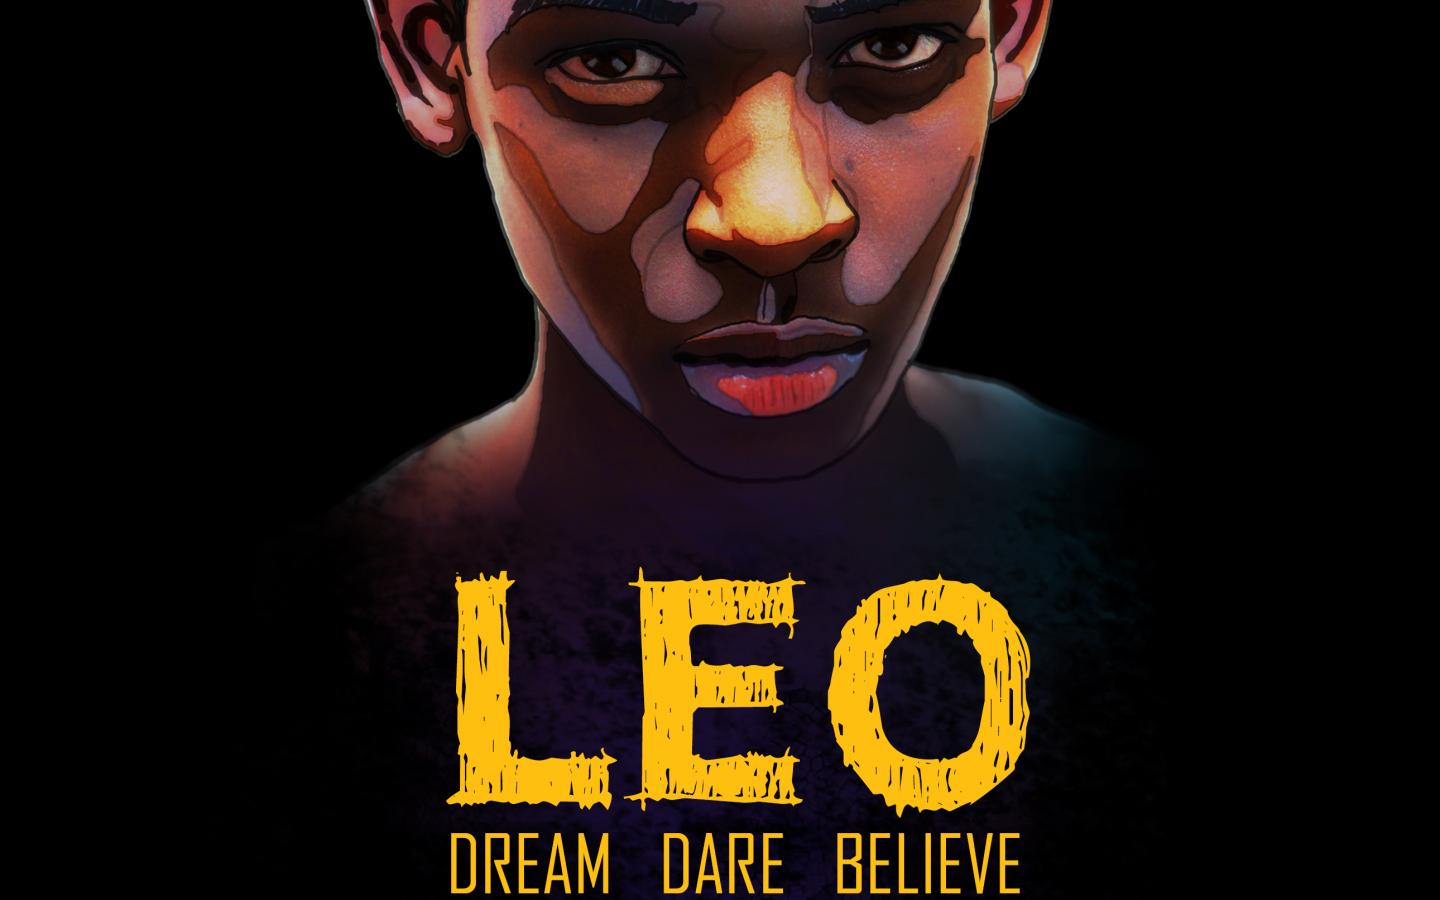 LEO: Dream, dare, believe